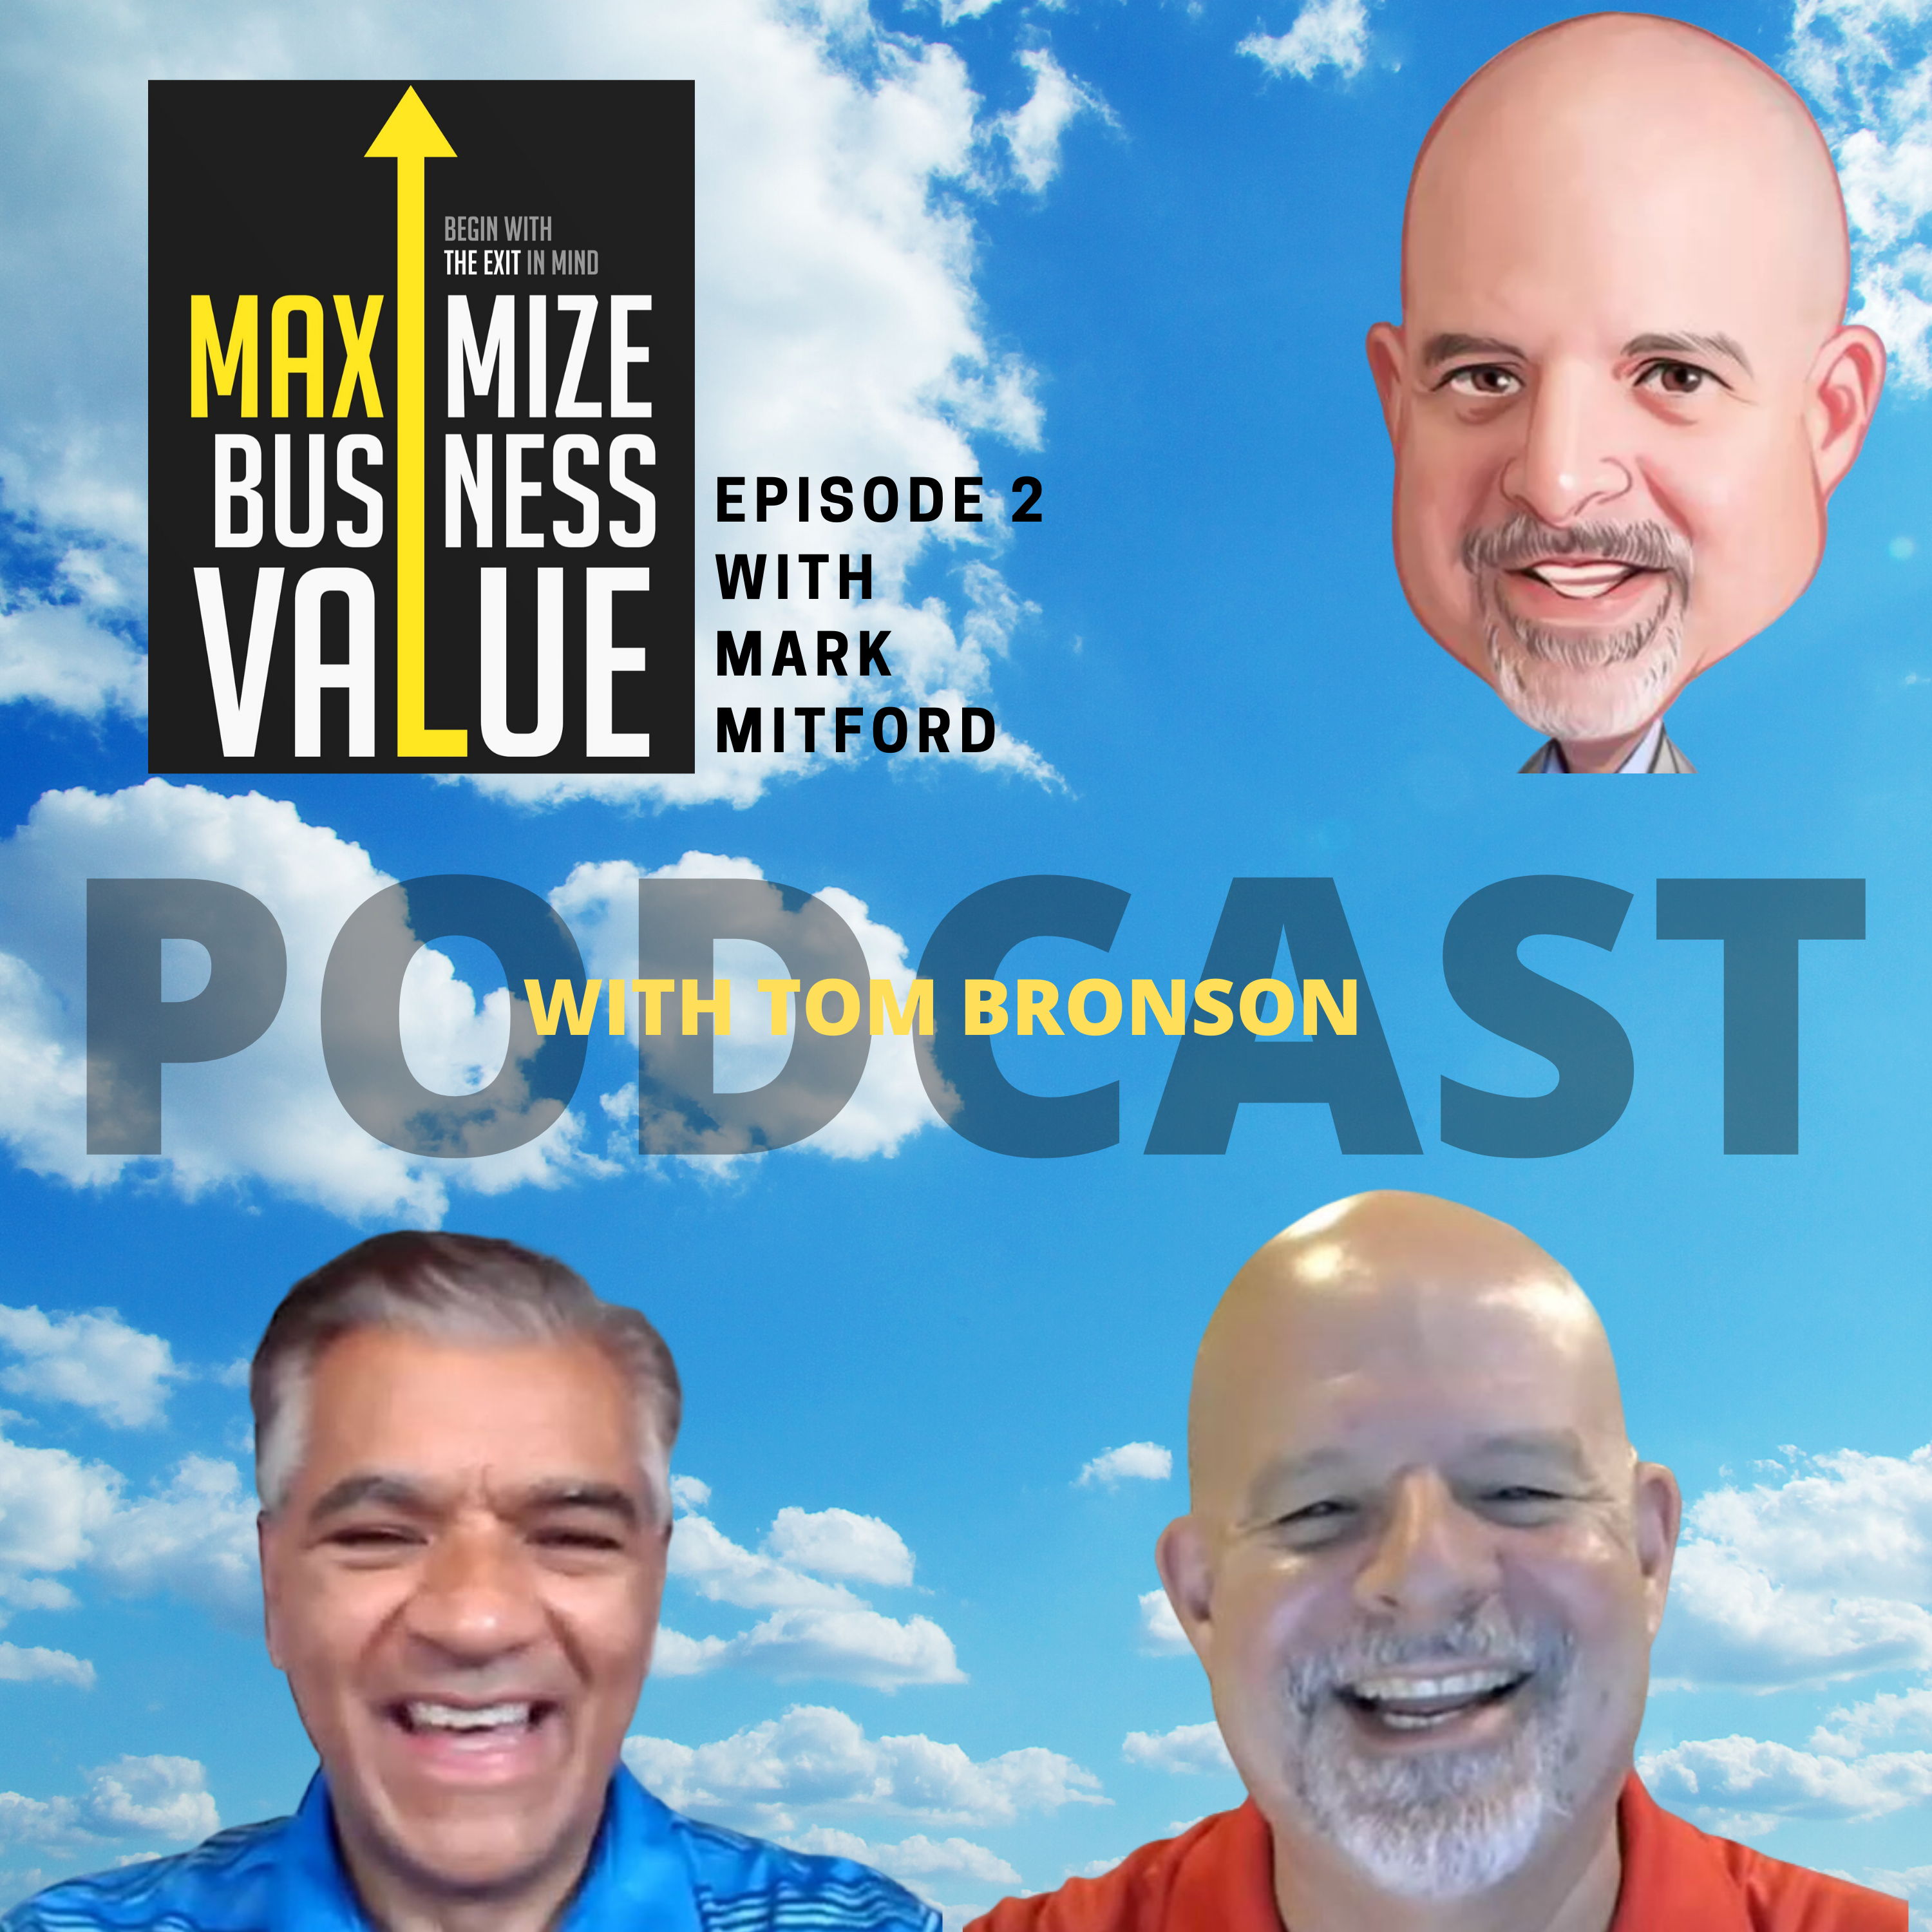 Maximize Business Value Podcast with Mark Mitford